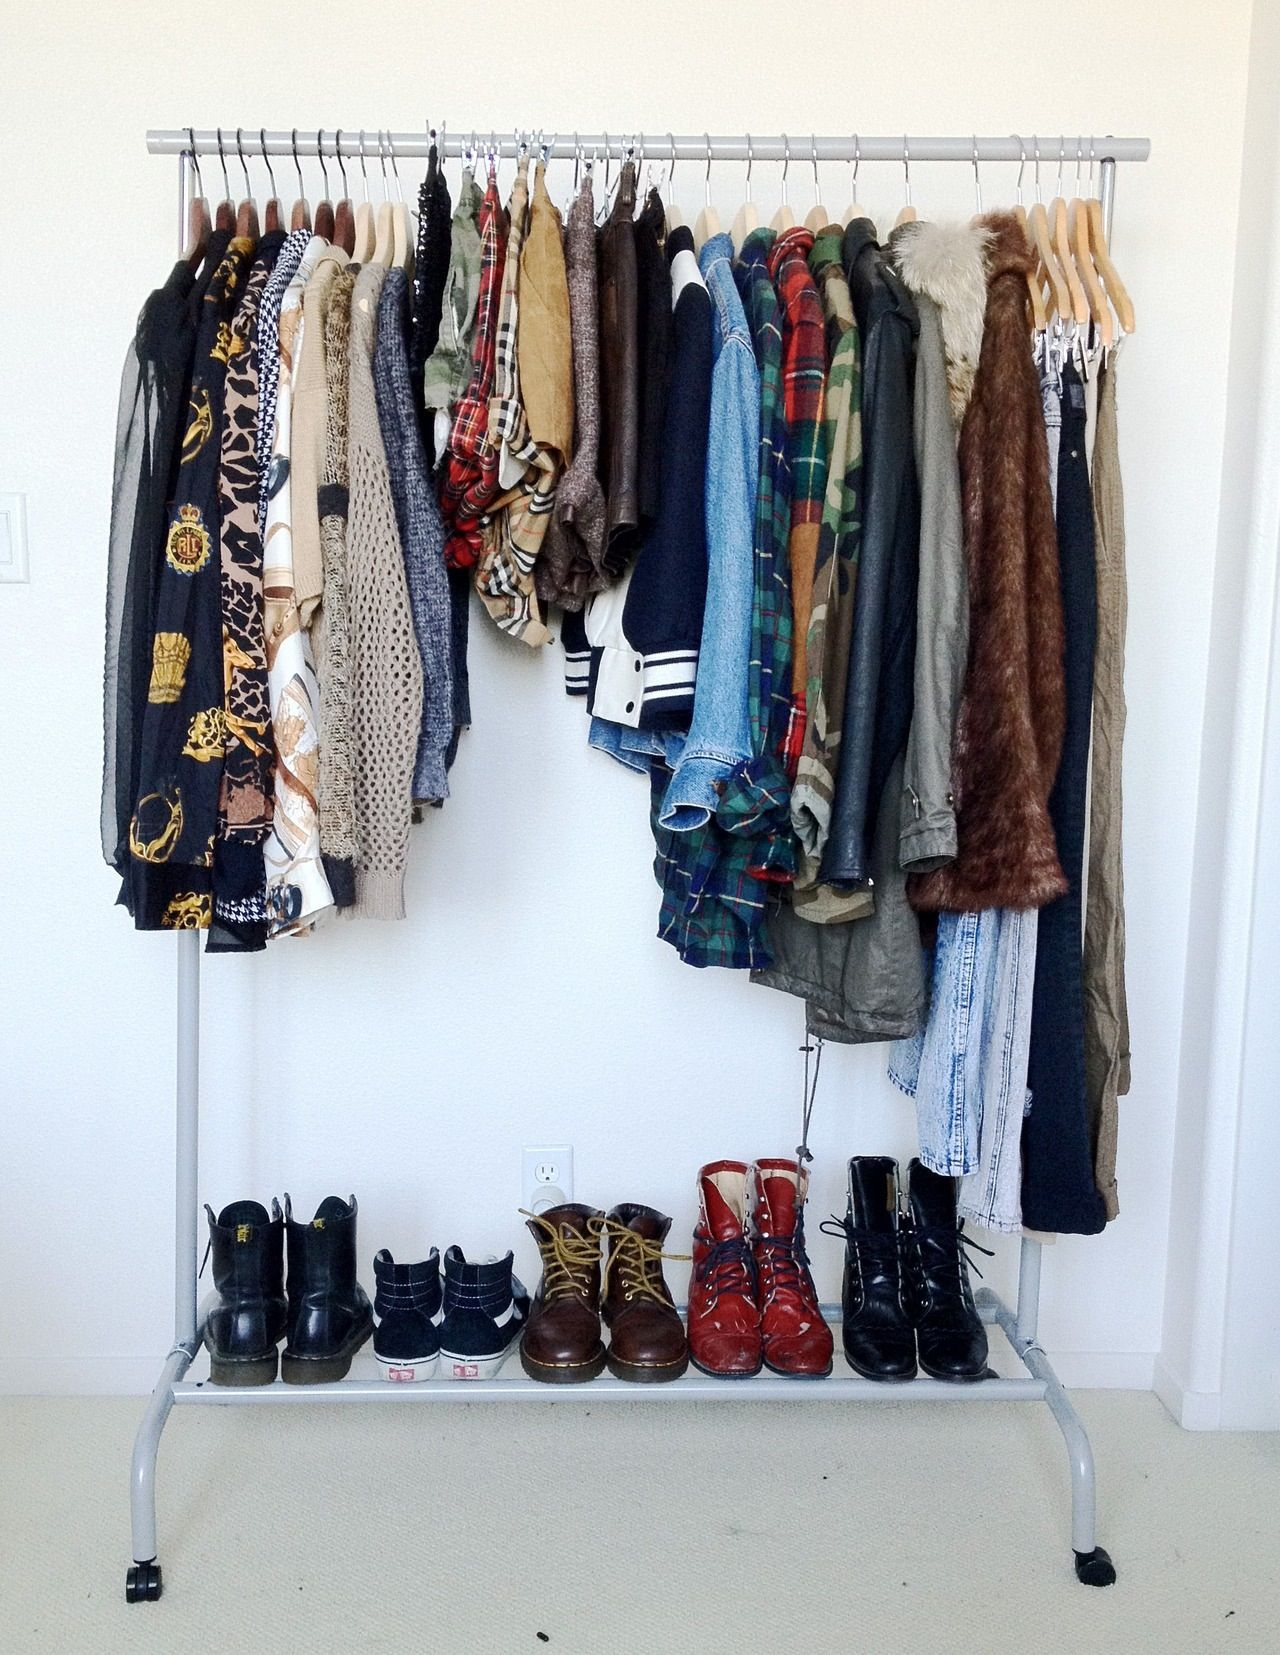 Uncategorized The Clothes Rack this could be the most perfect clothes rack ever i want all clothes